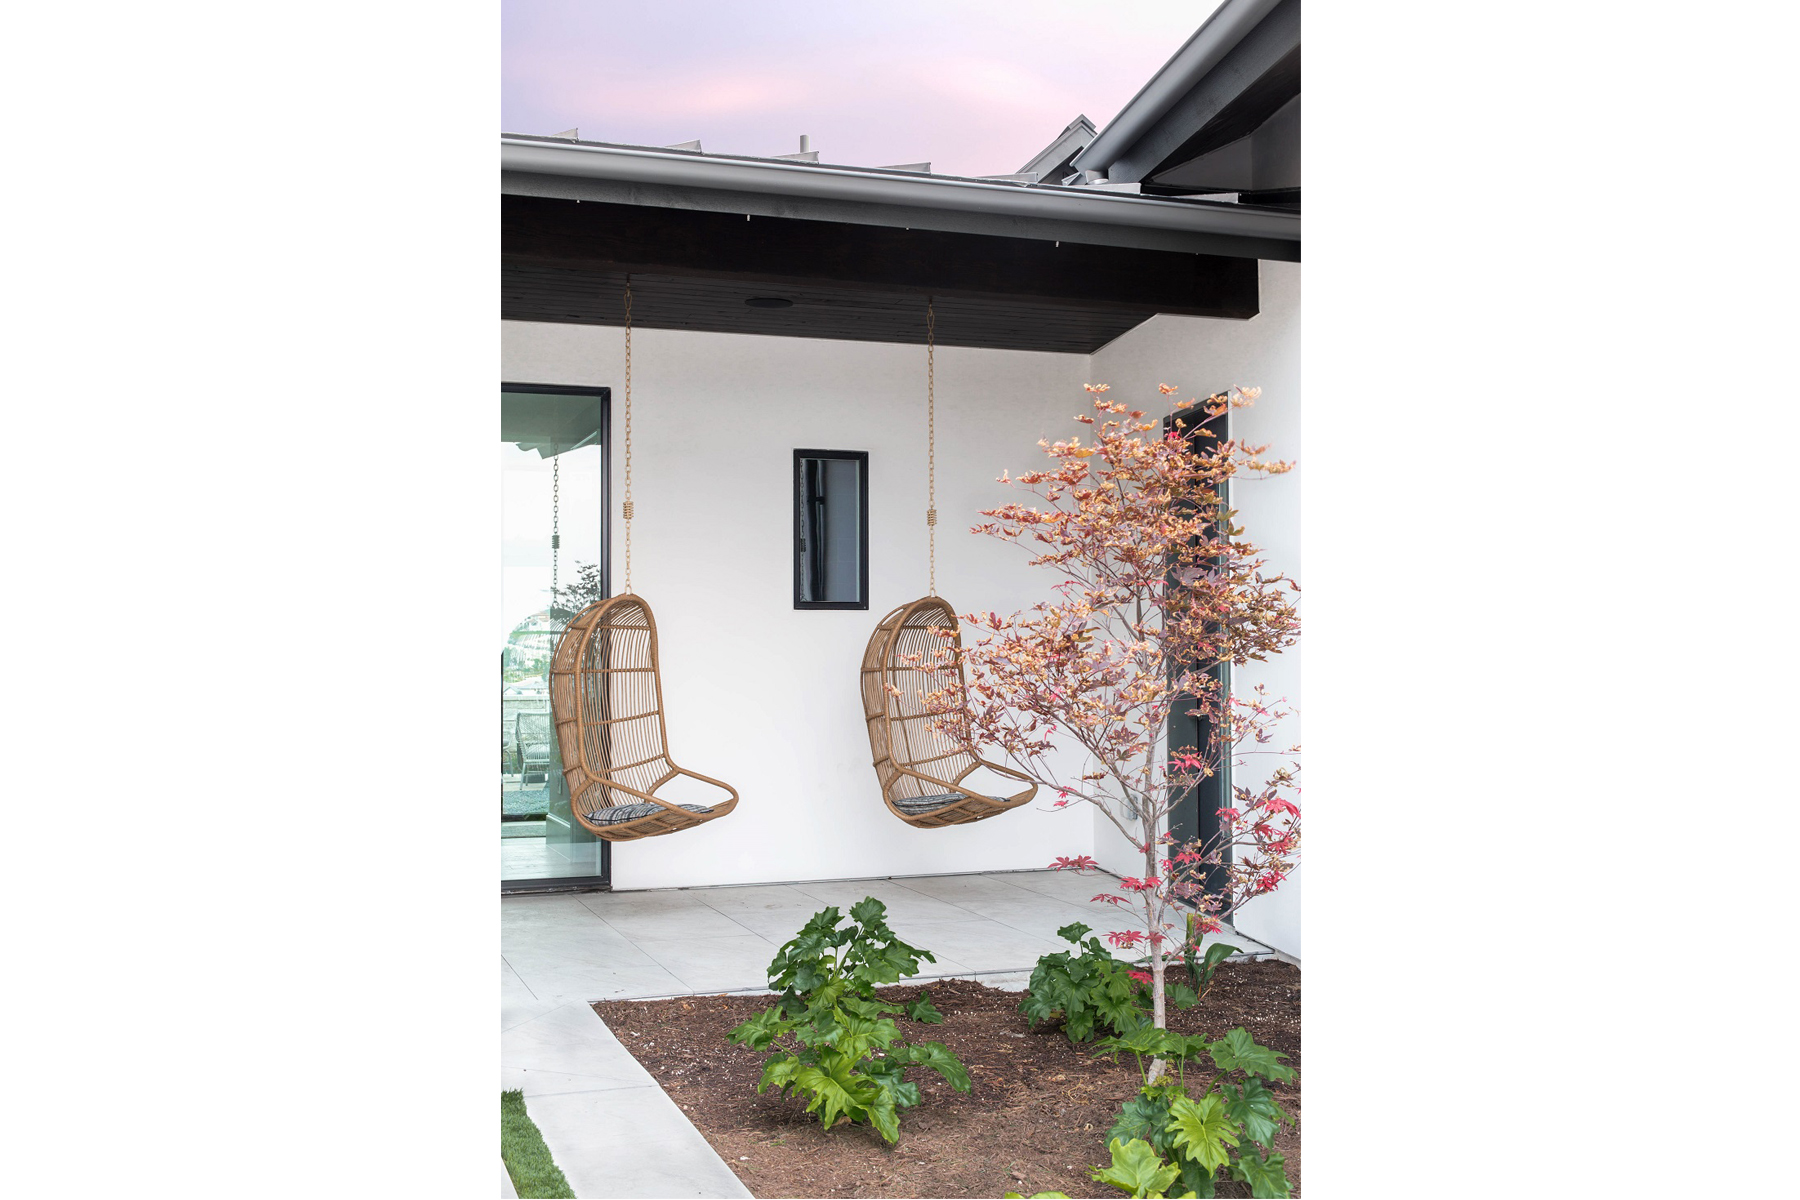 Peninsula Residence - swing chairs